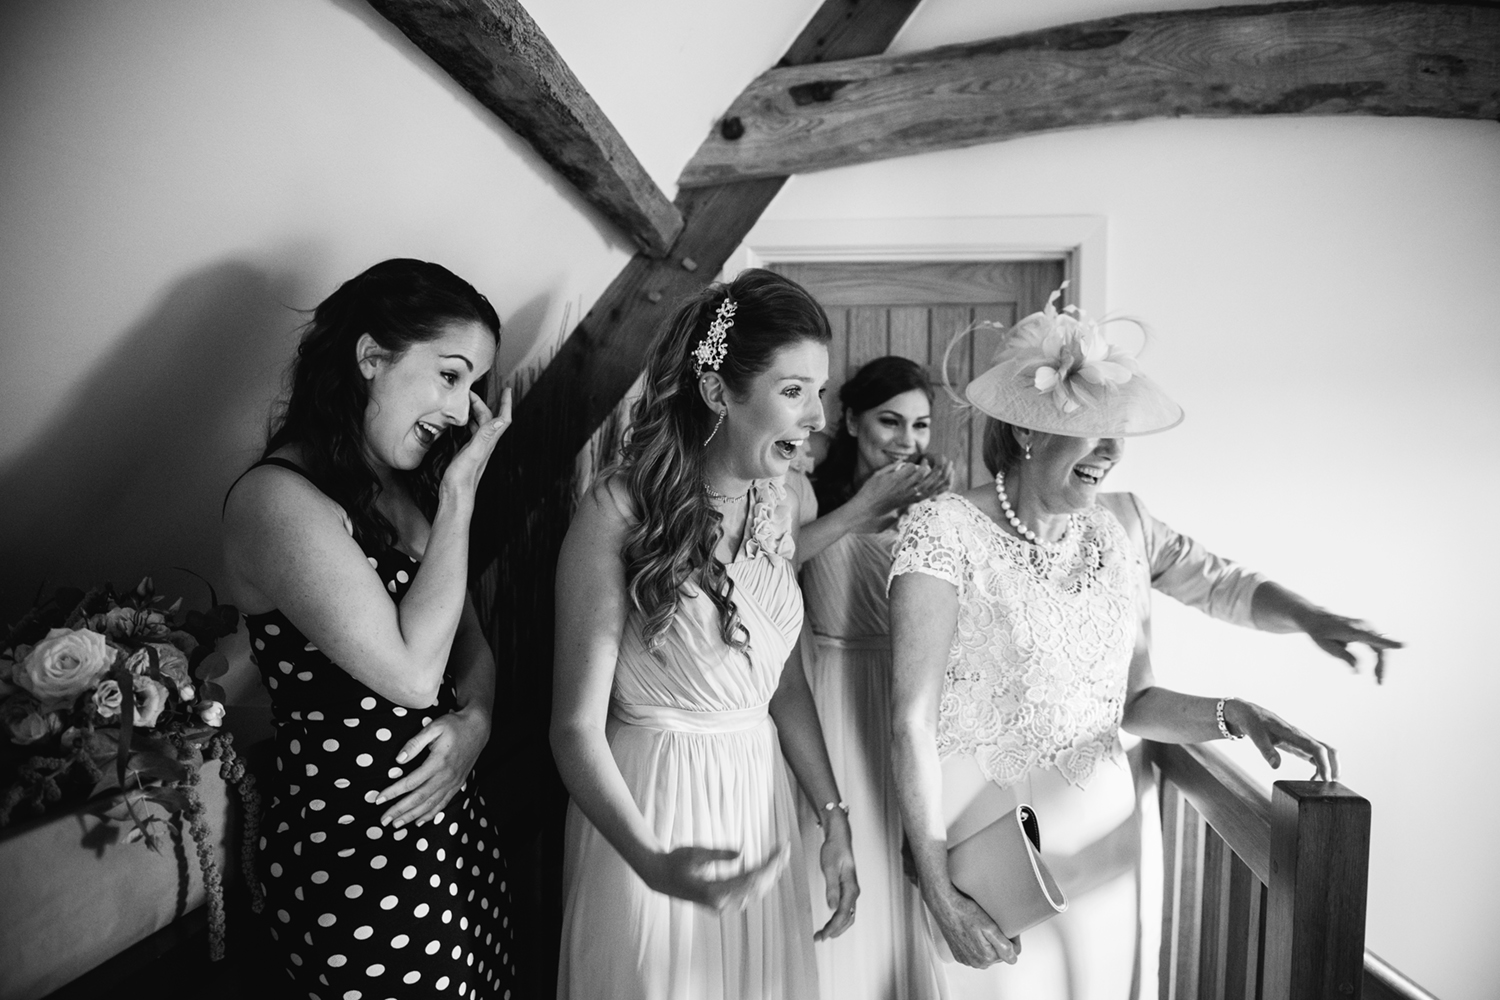 Kingscote-Barn-Wedding-Photographer-30.jpg